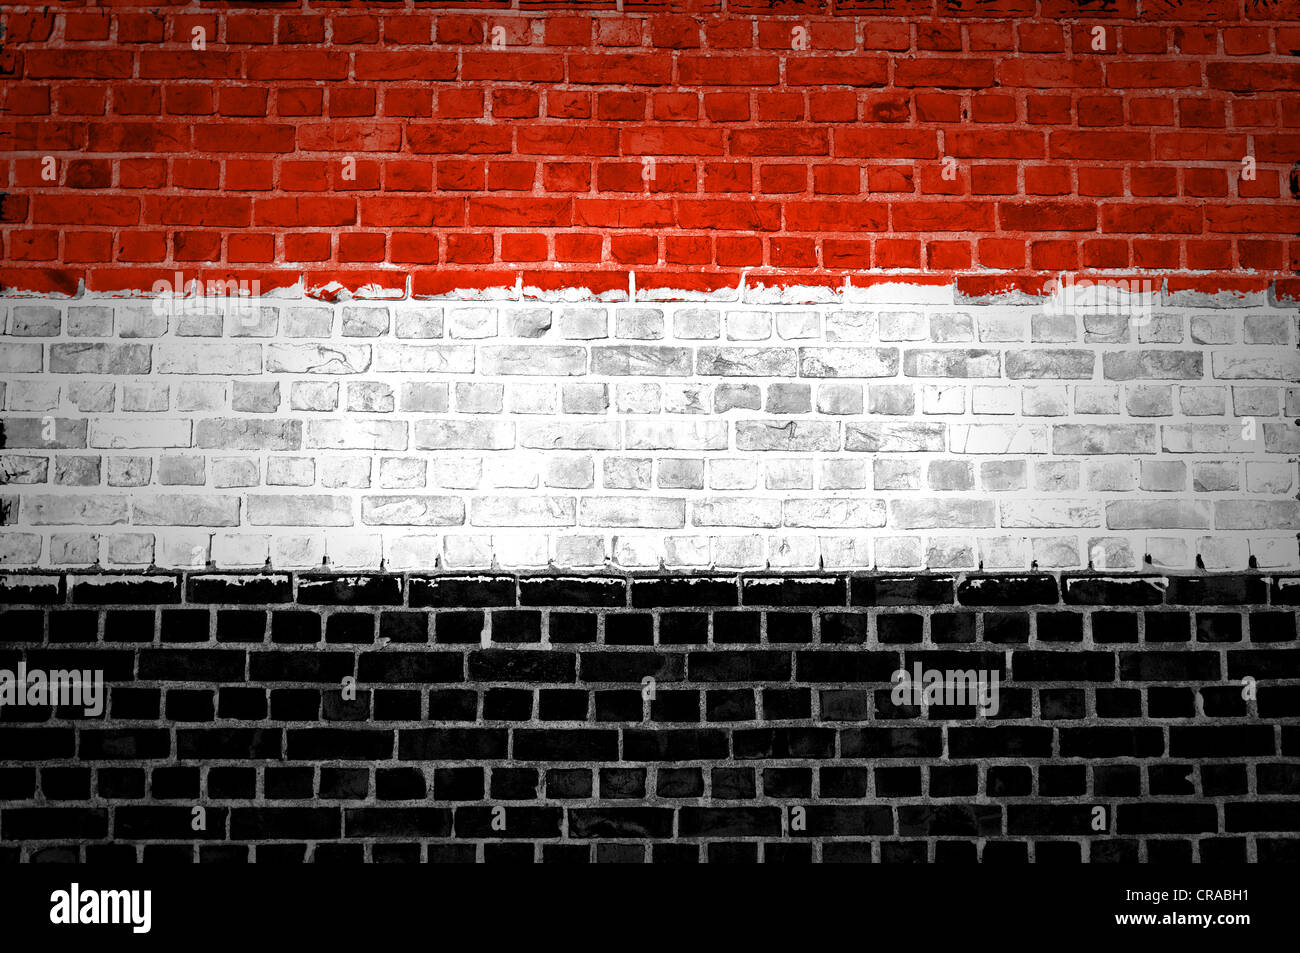 An image of the Yemen flag painted on a brick wall in an urban location - Stock Image